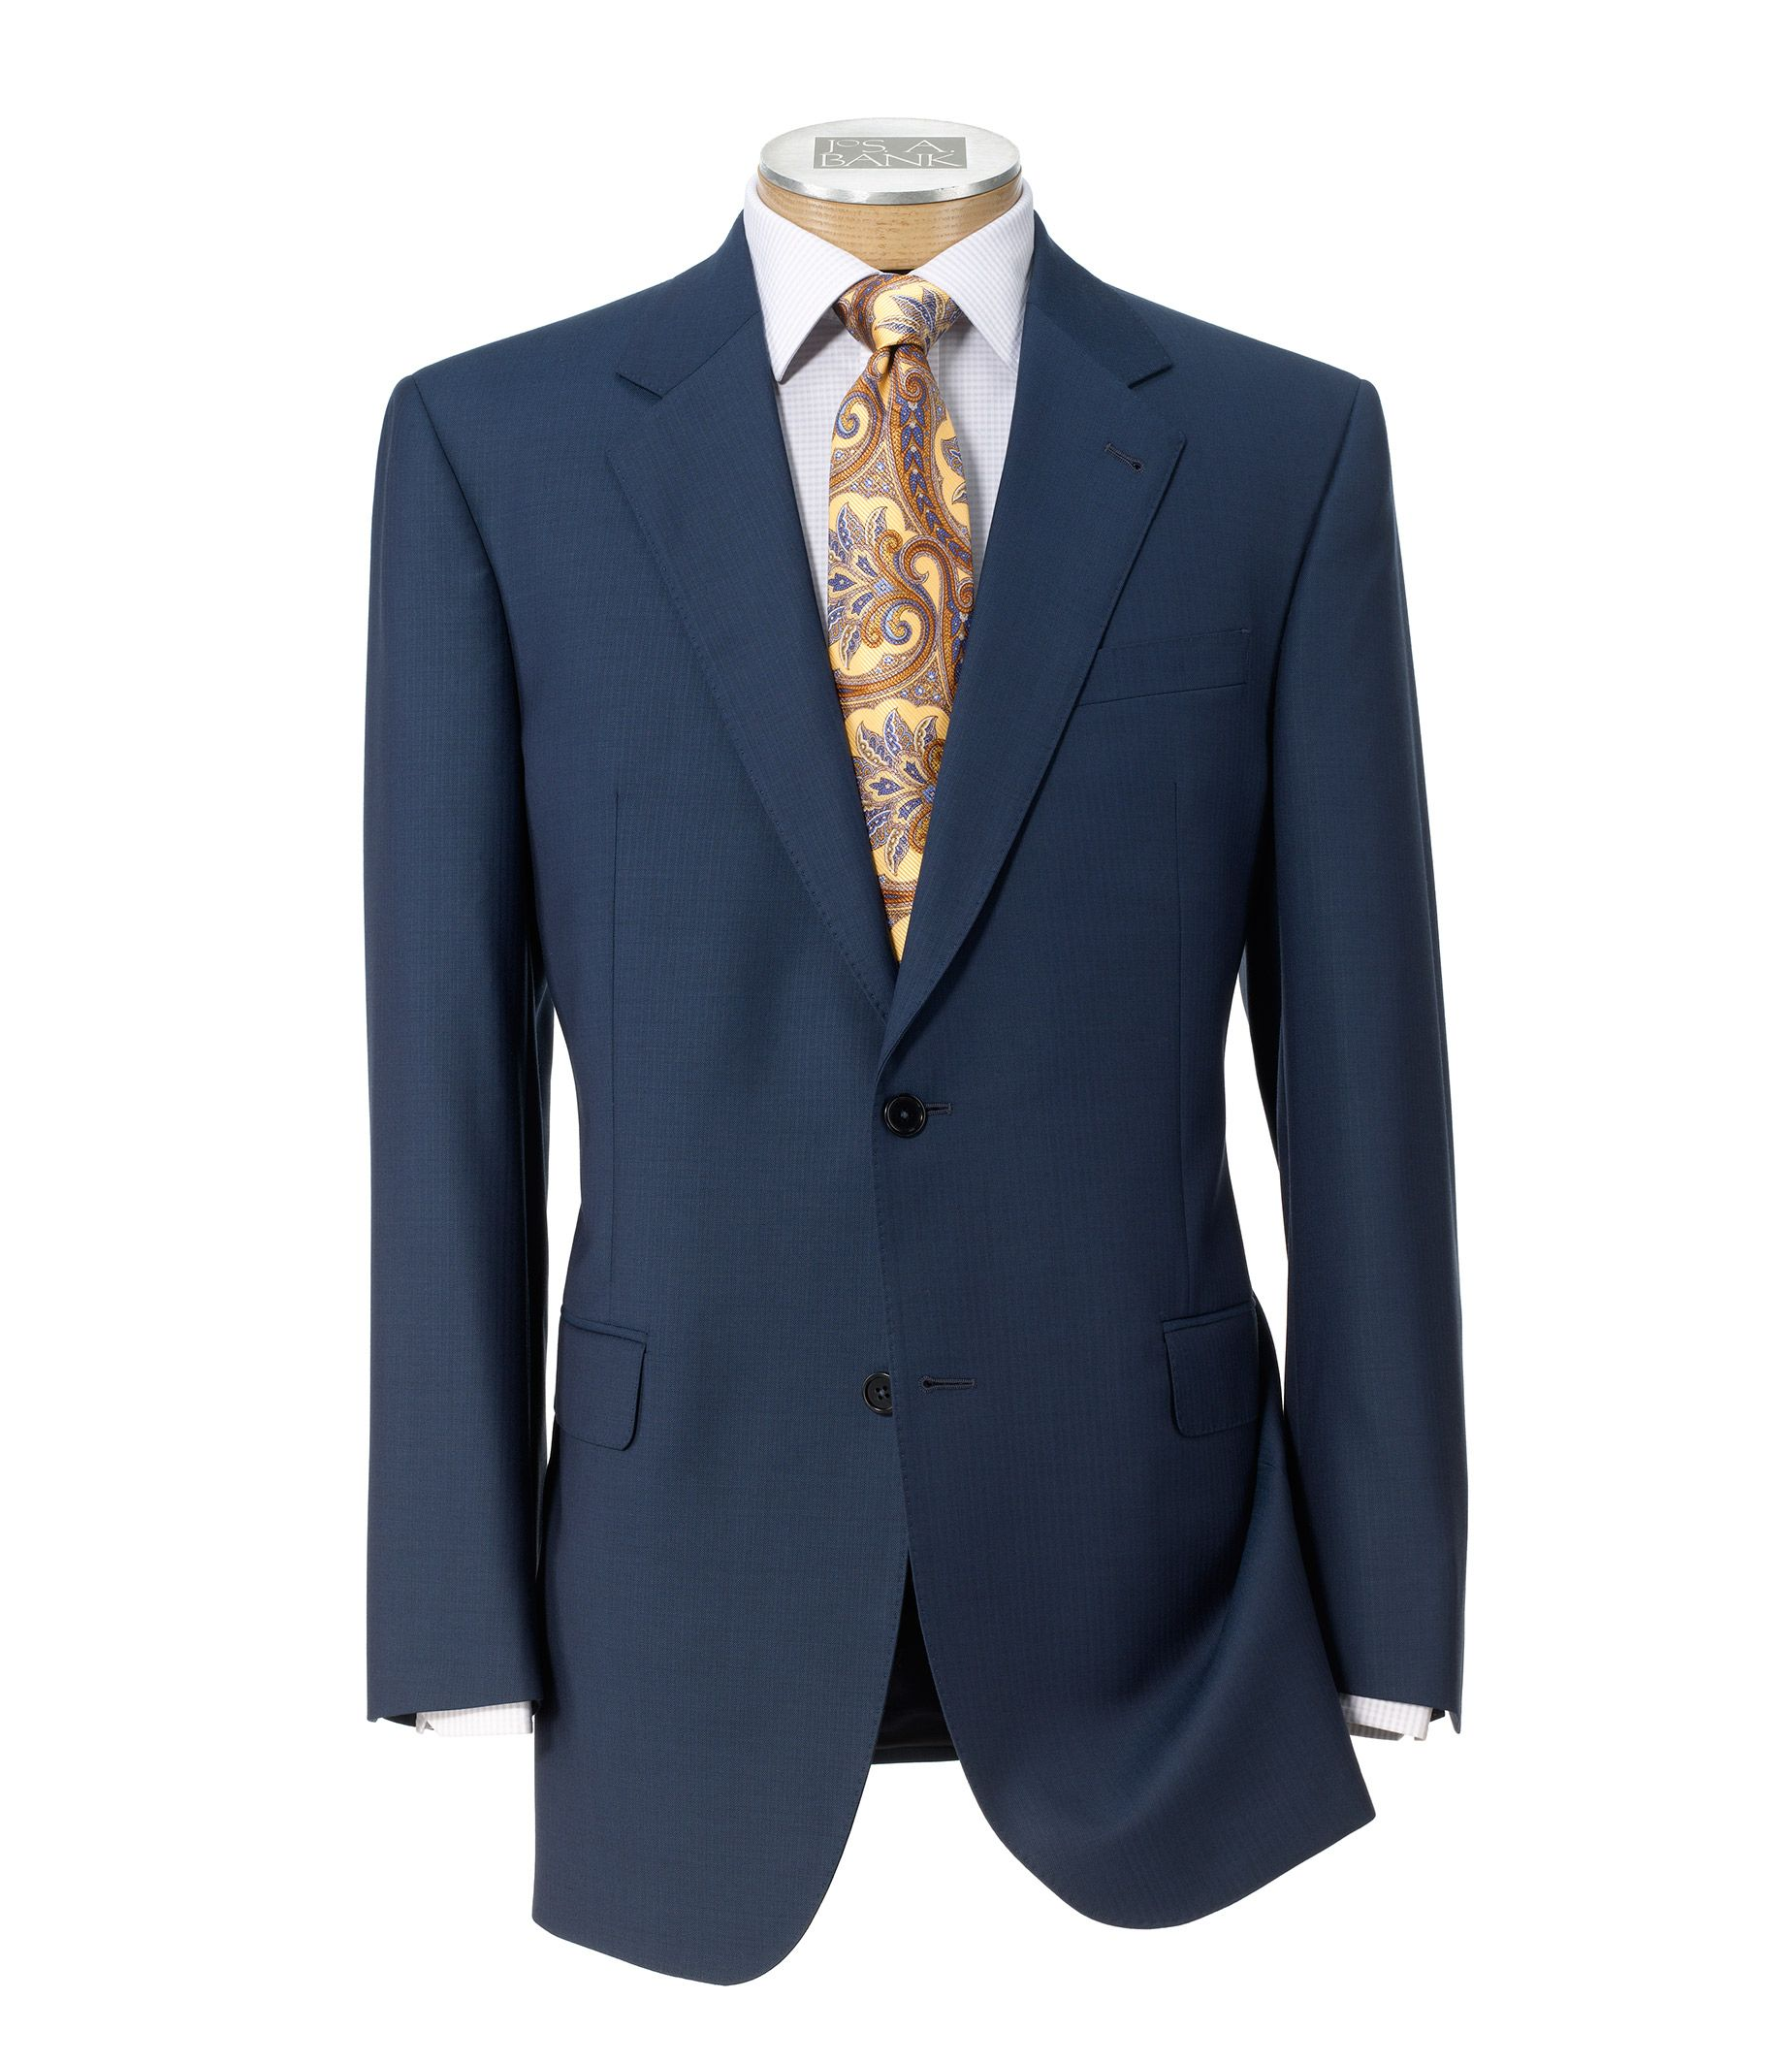 navy blue and gold suit dress yy